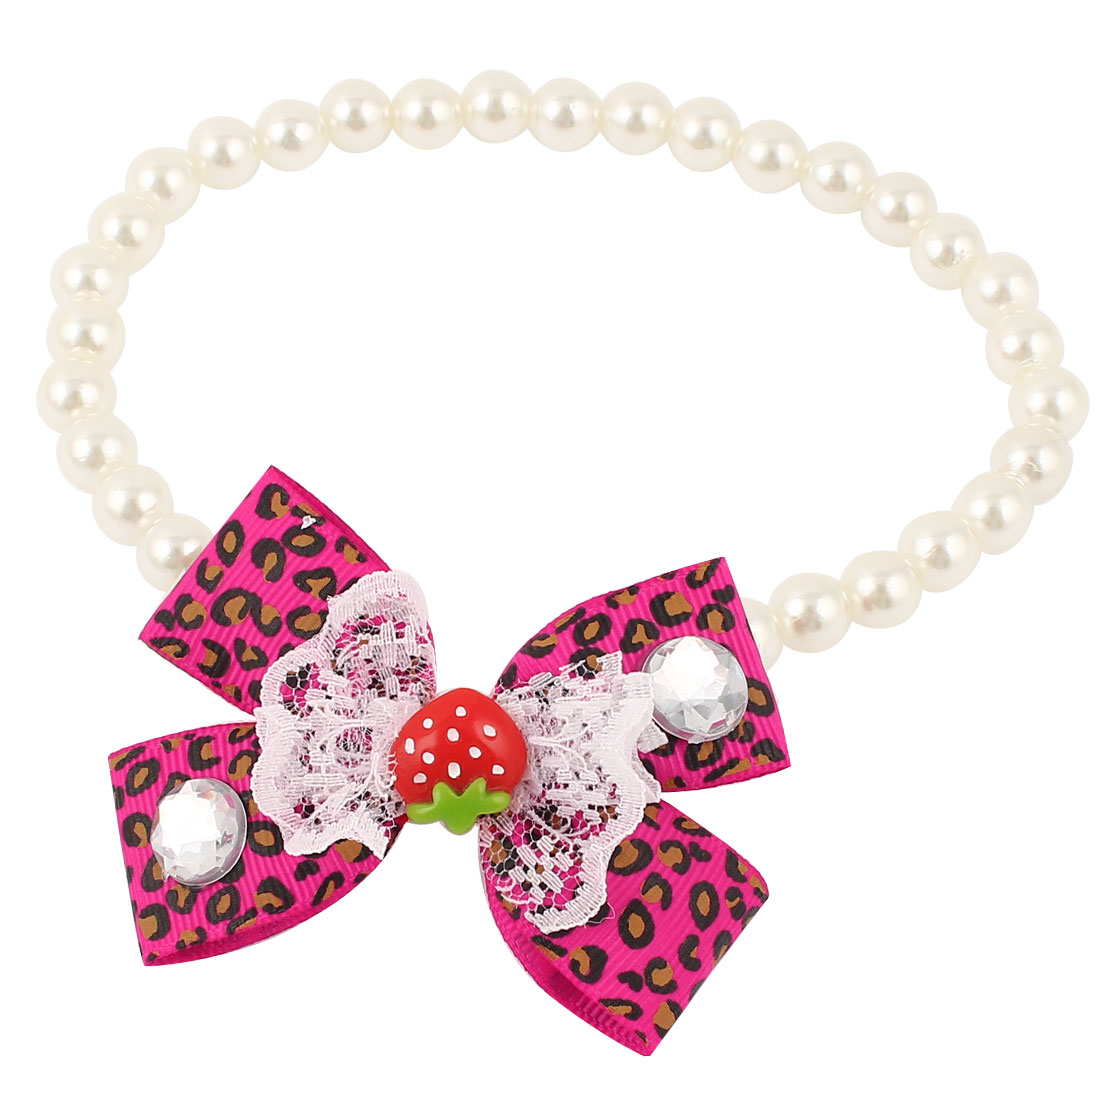 Bowtie Lace Faux Crystal Accent Pet Dog Plastic Beads Imitation Pearls Collar Necklace White Fuchsia L